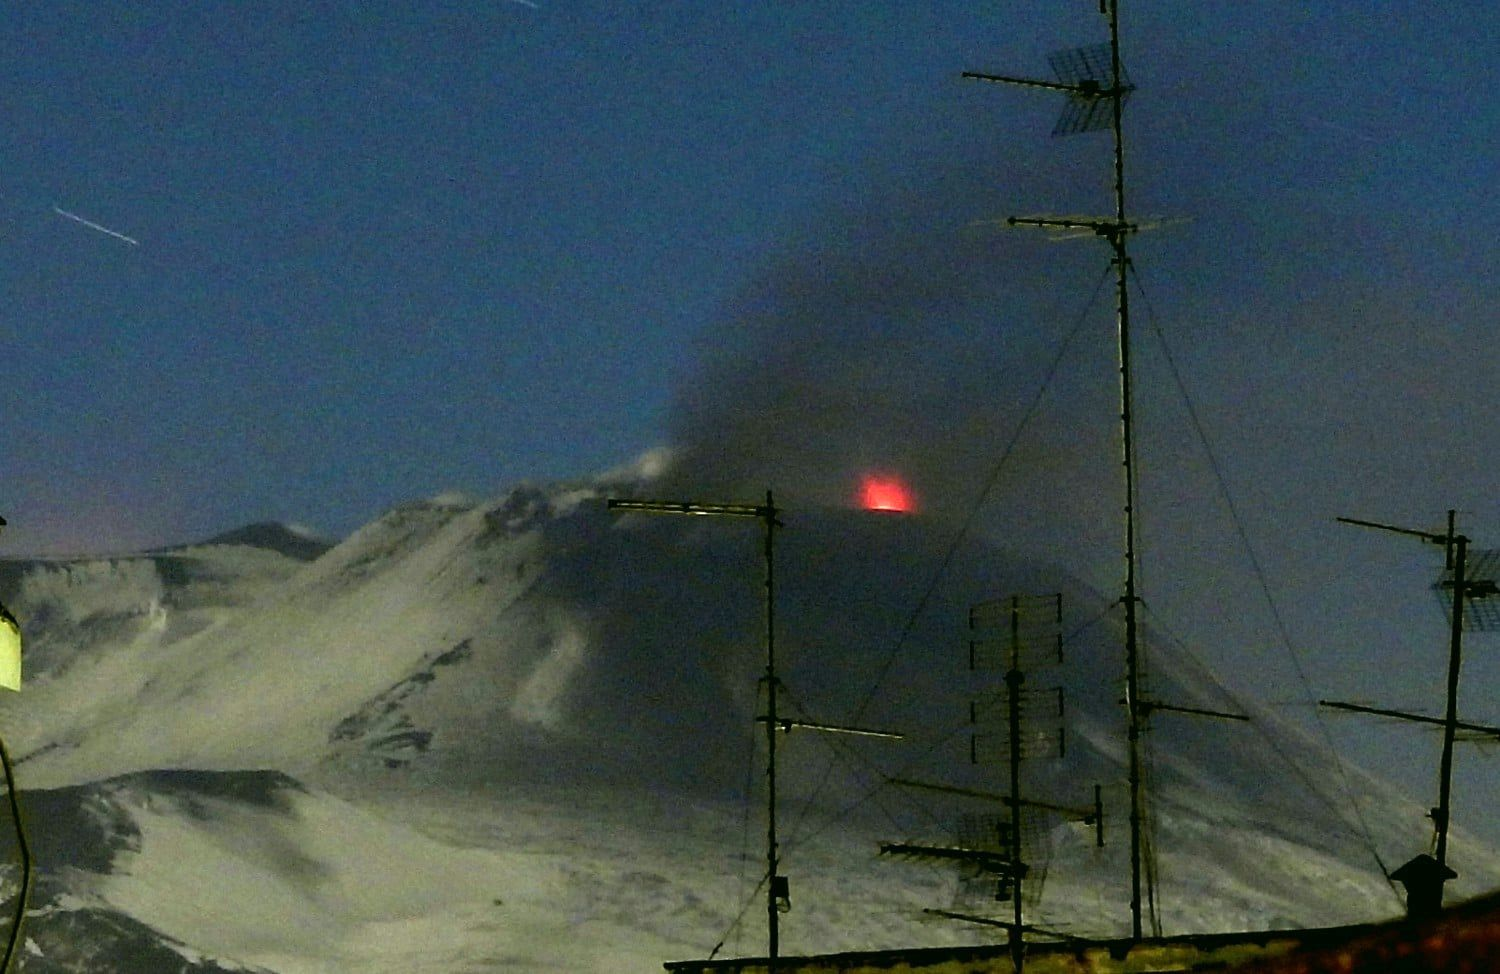 Etna - Strombolian explosion at the eastern mouth of the NSEC at 1:10 a.m. (local time) on December 12, 2019 - photo INGV OE